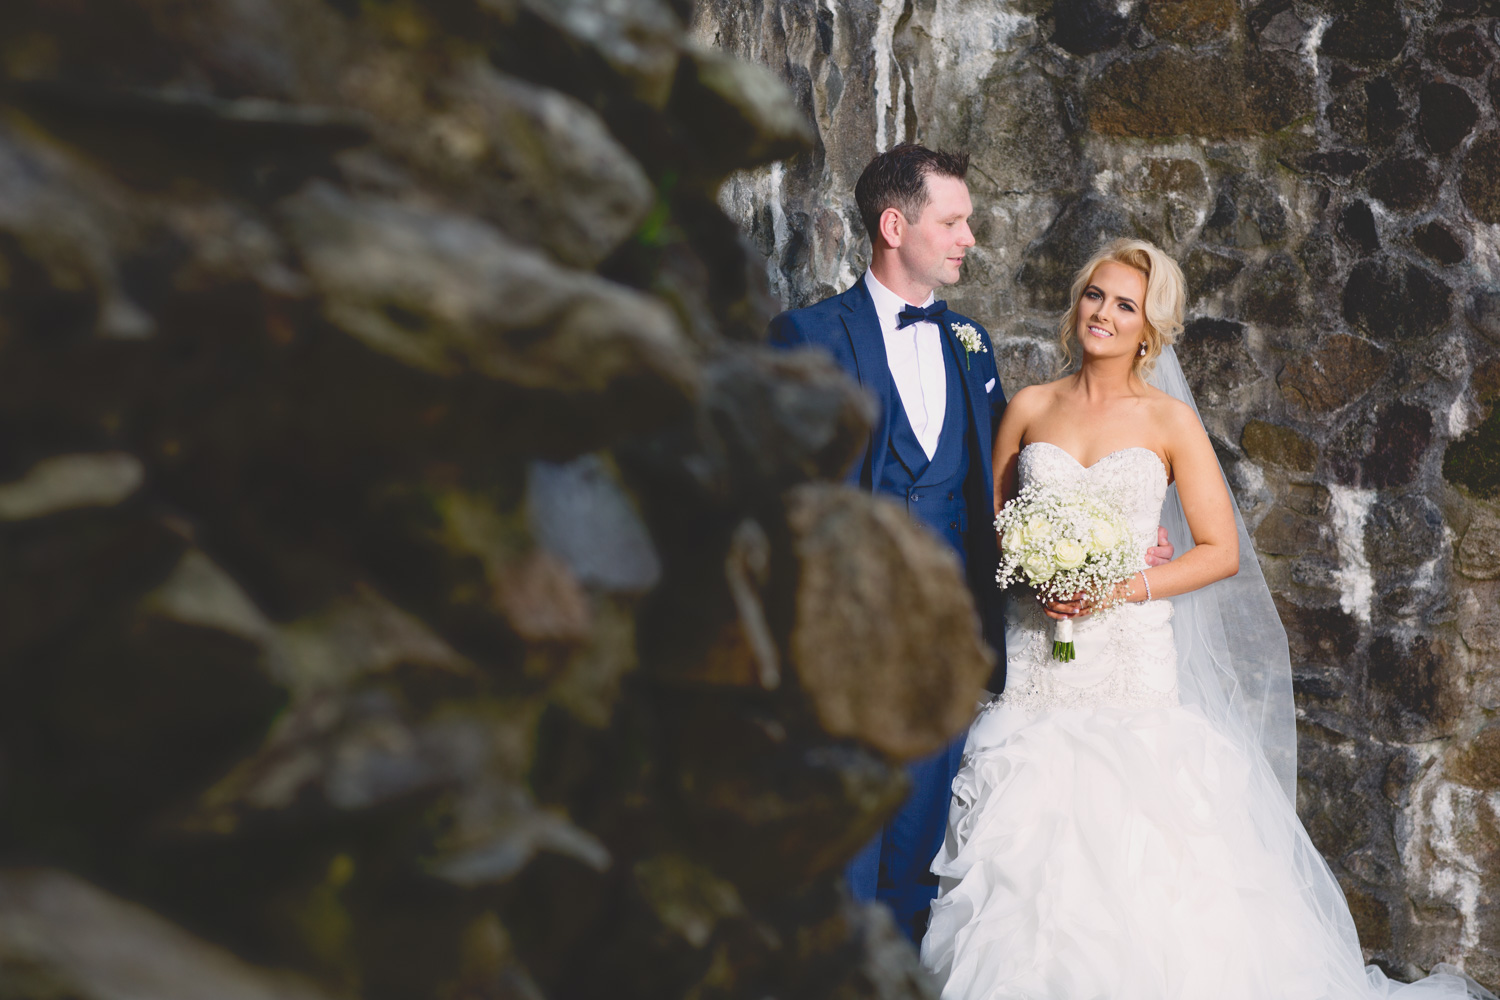 Mark_Barnes_wedding_photographer_Northern_Ireland_Wedding_photography_Carlingford_Four_Seasons_Wedding-37.jpg